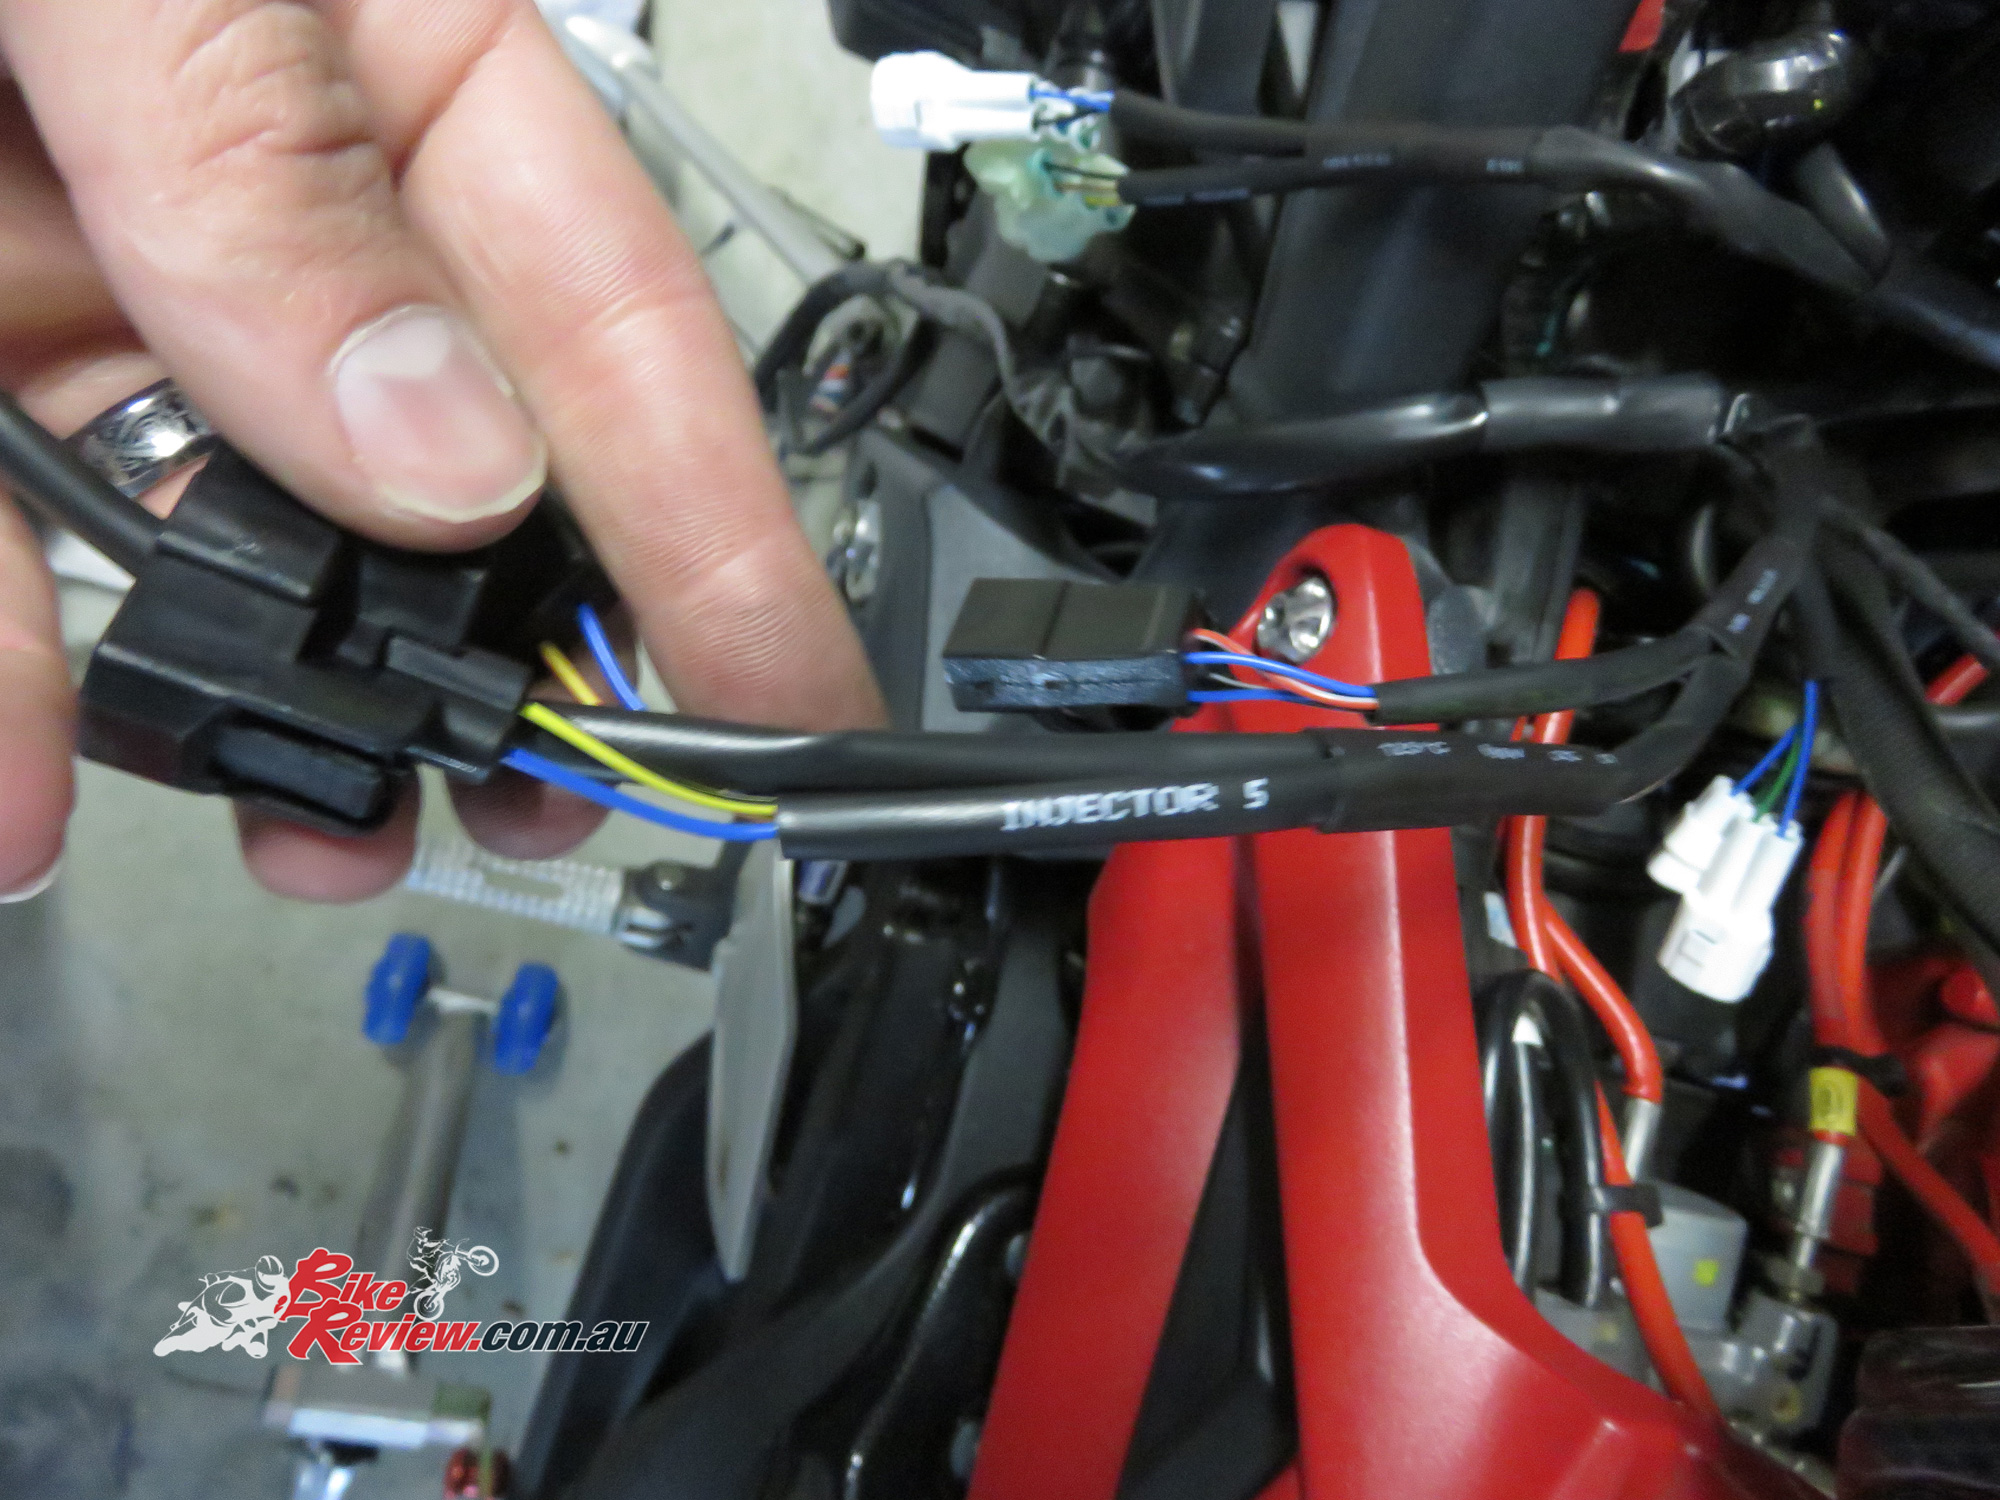 Tech Tips Fuel Module Install Rapid Bike Evo Review Easy Rider Wiring Harness Bikereview 111